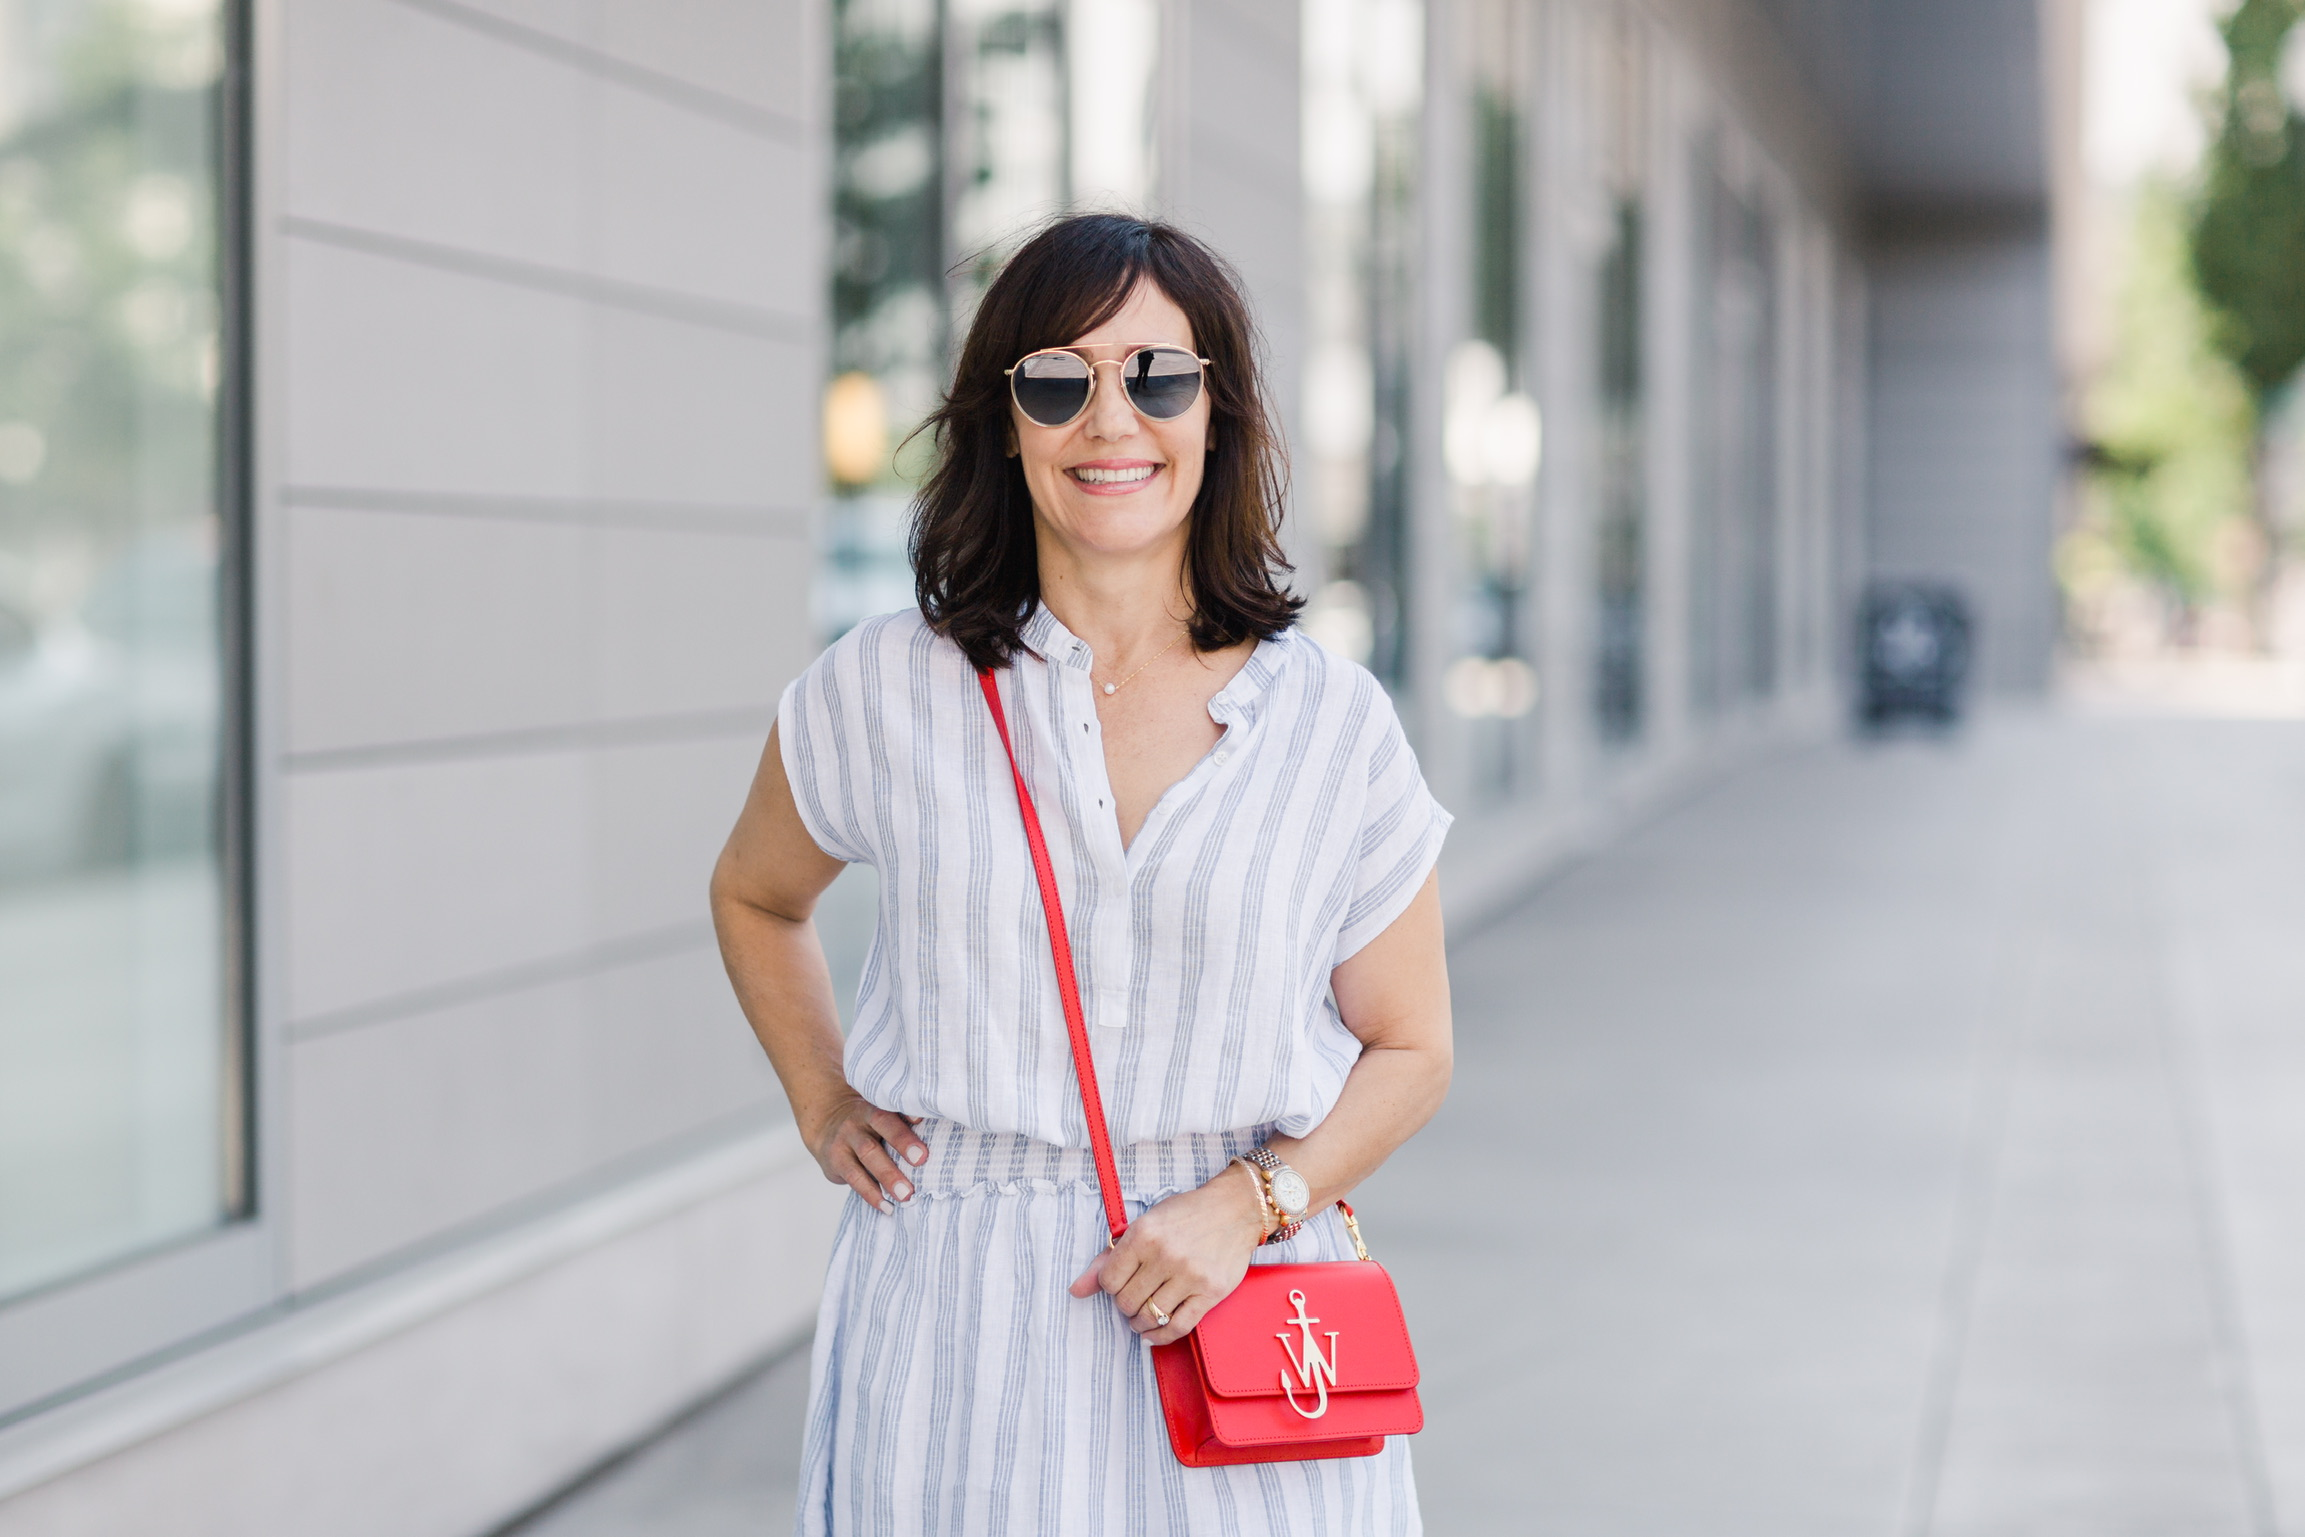 Fashion blogger wearing a white and blue striped Rails sundress and red crossbody bag